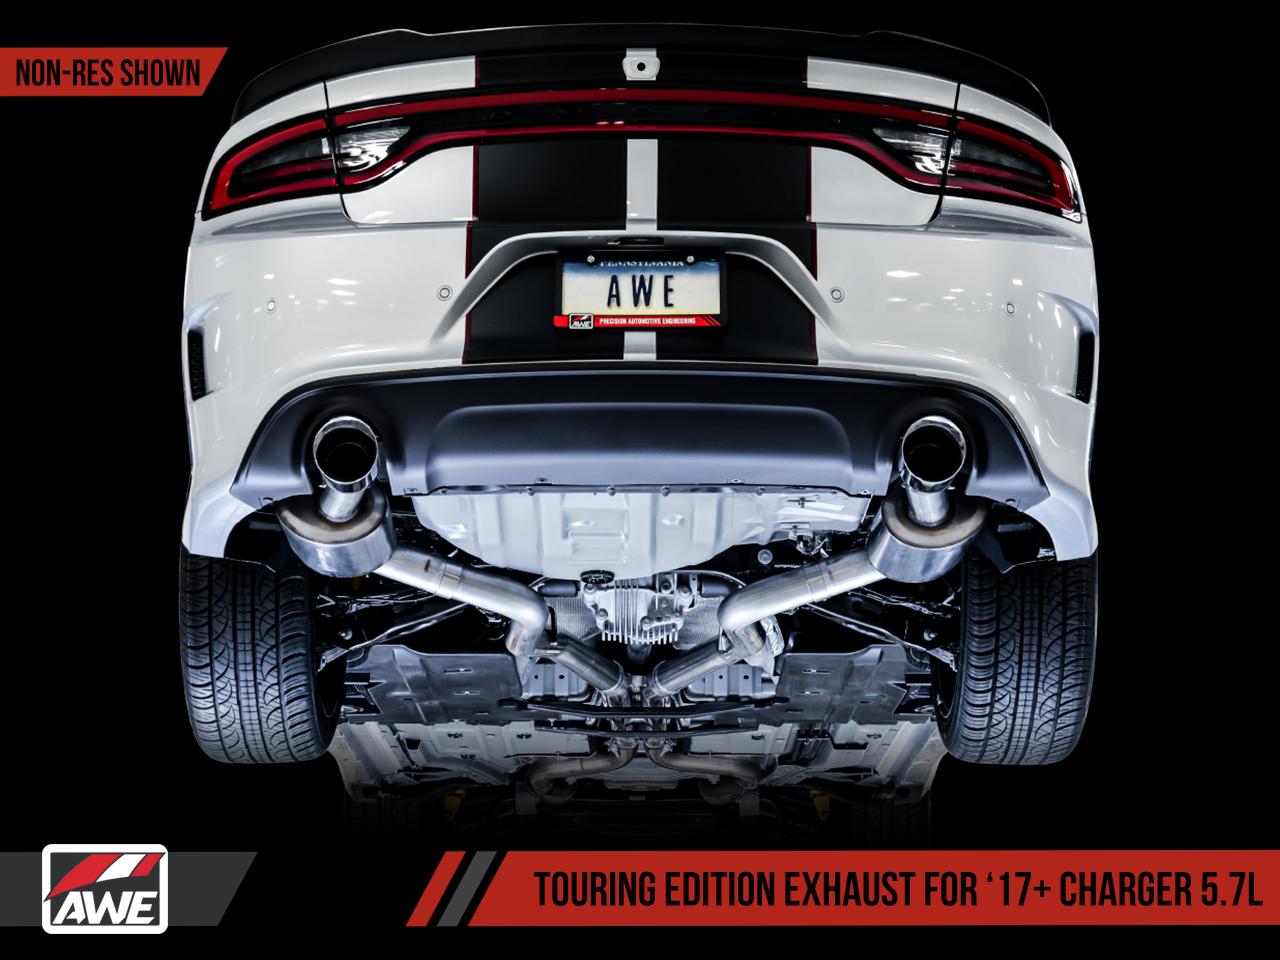 Awe Exhaust Suite For The 15 Dodge Charger R T 5 7 Awe